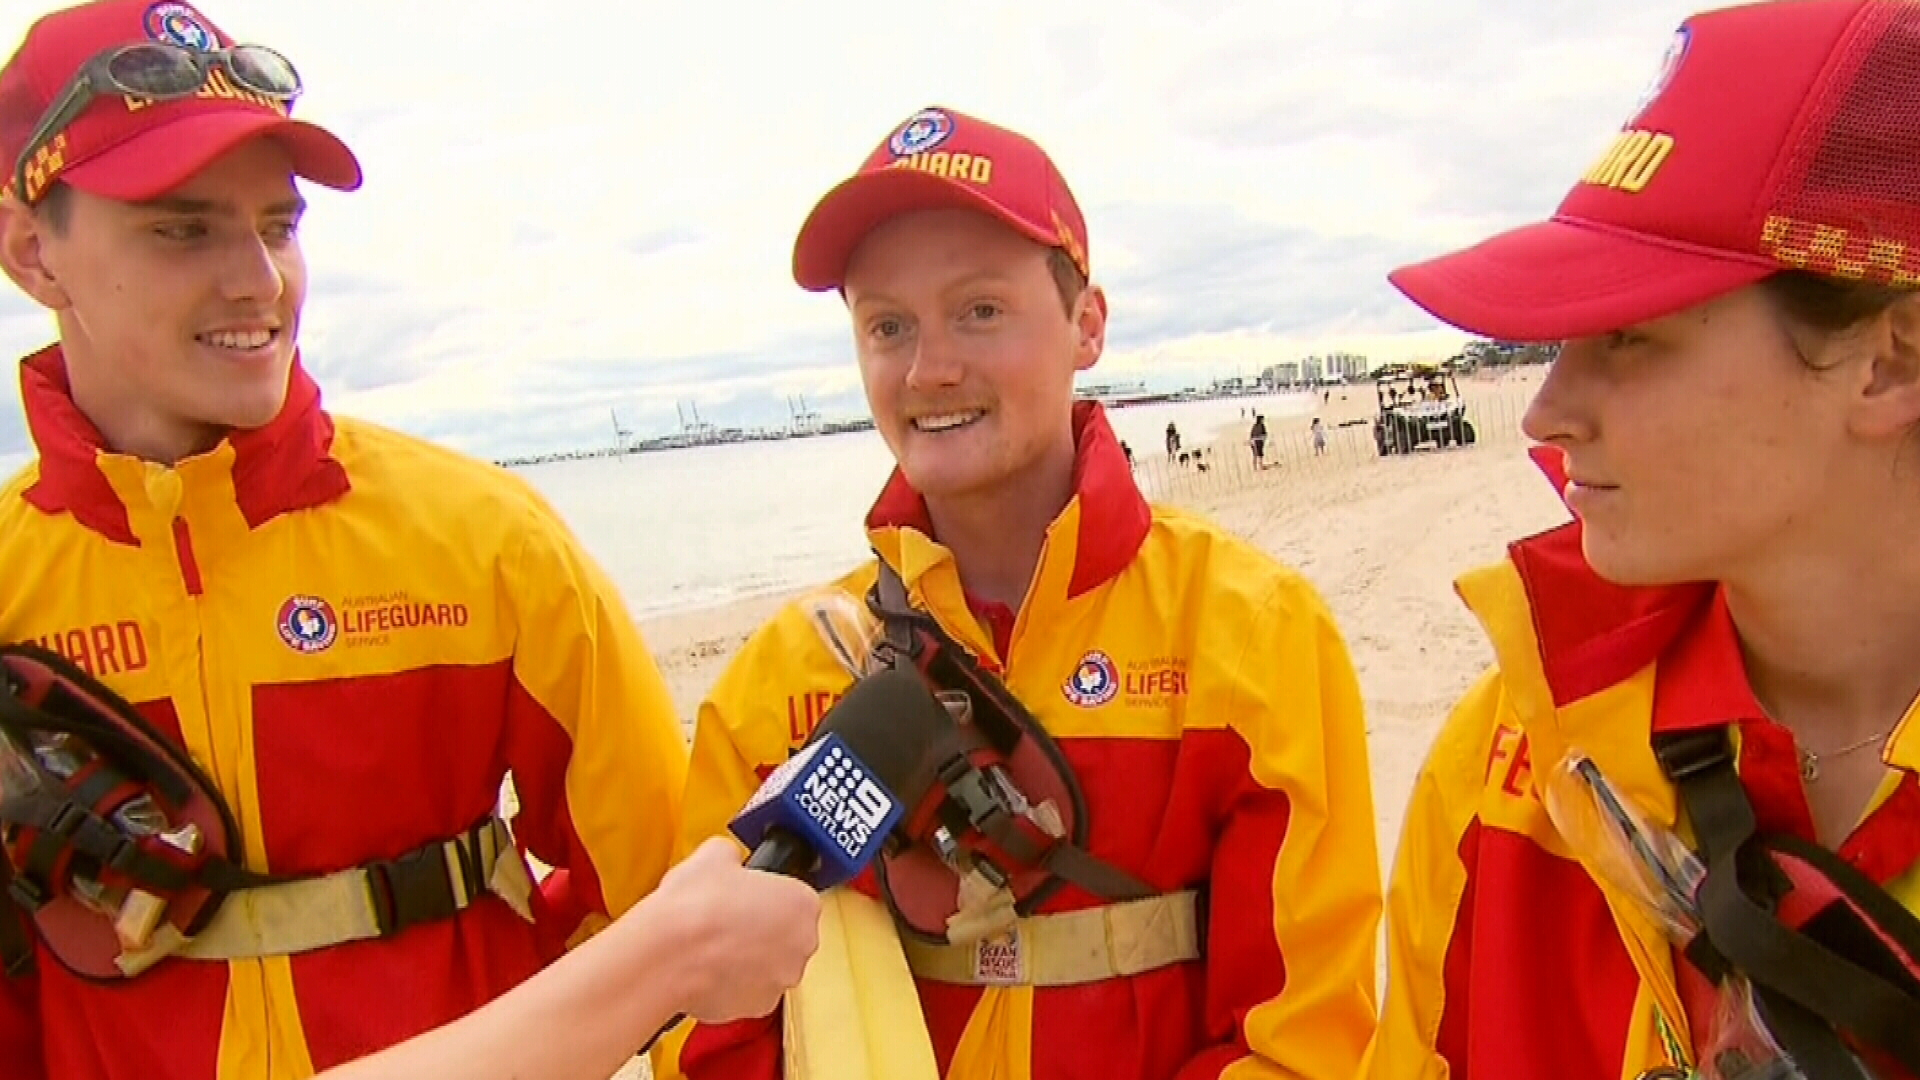 Melbourne lifeguards speak on meeting Prince Harry and Meghan